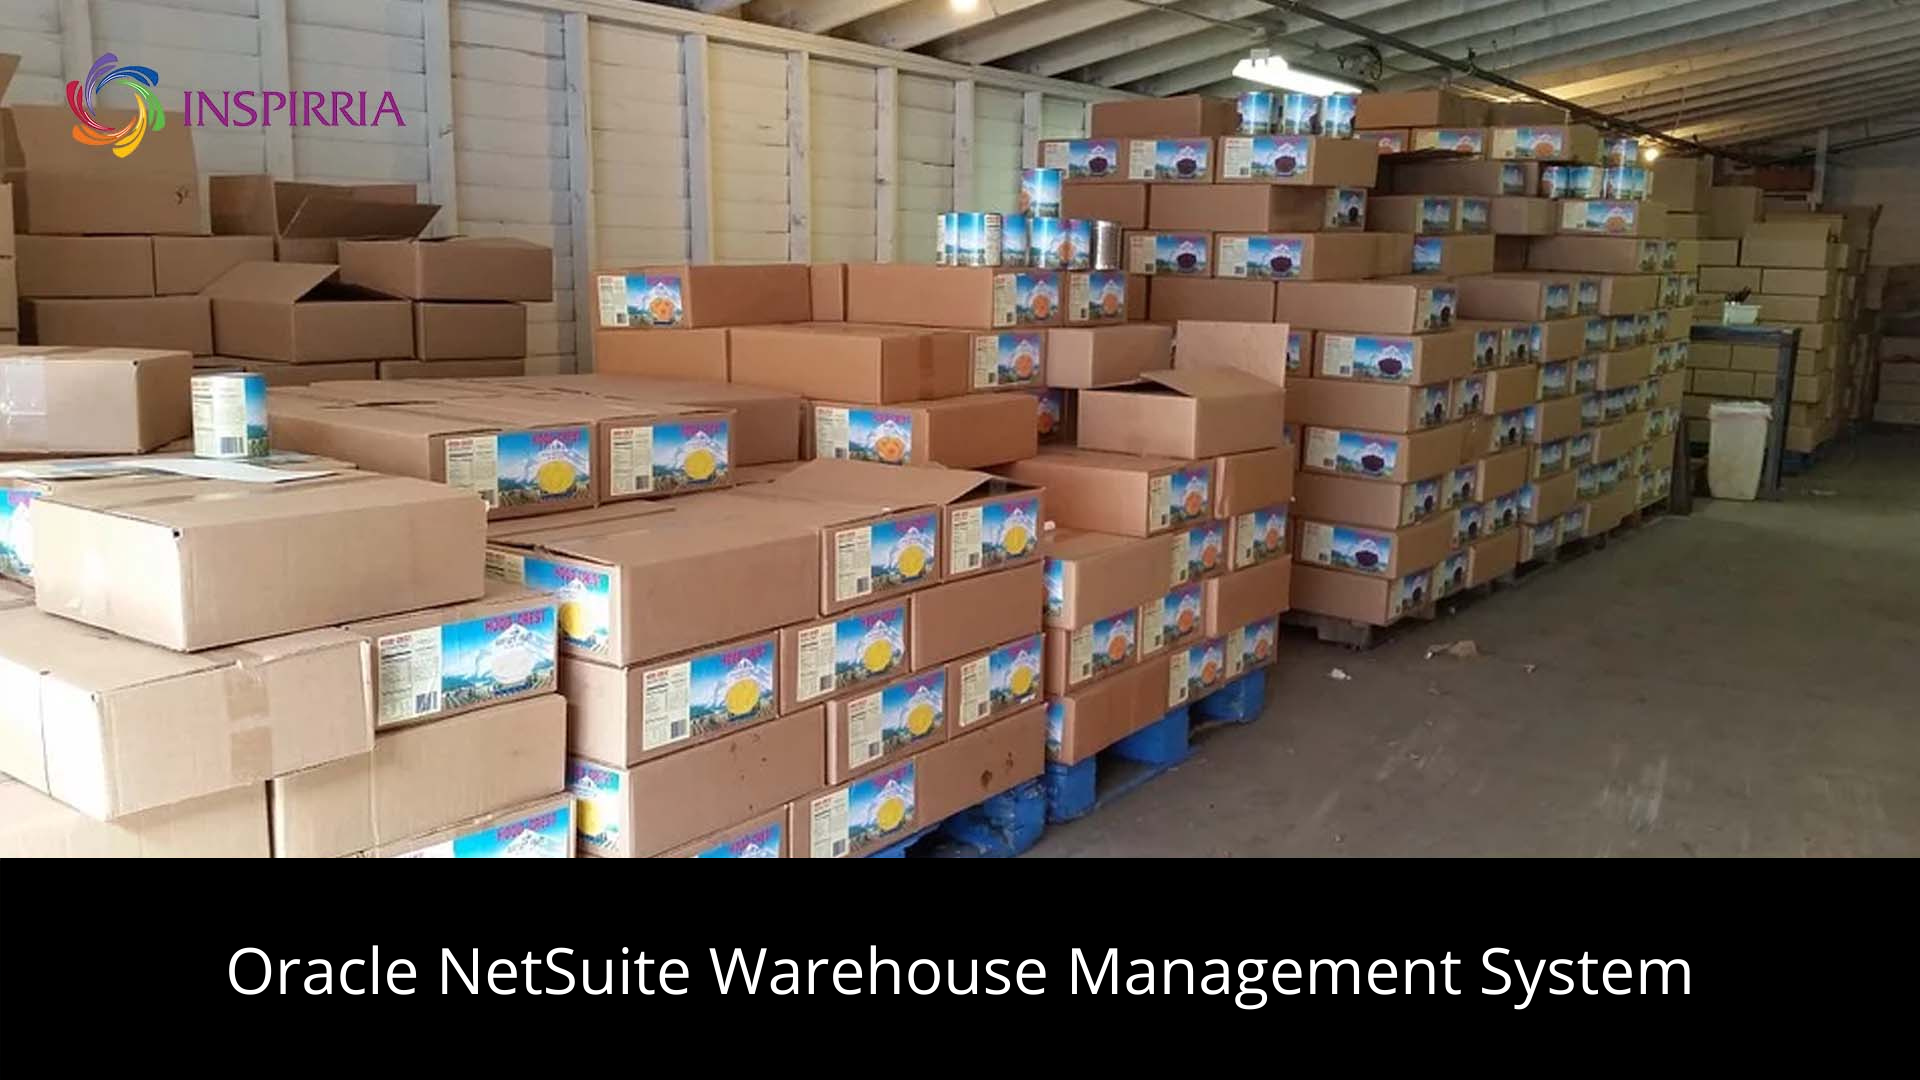 NetSuite Warehouse Management System